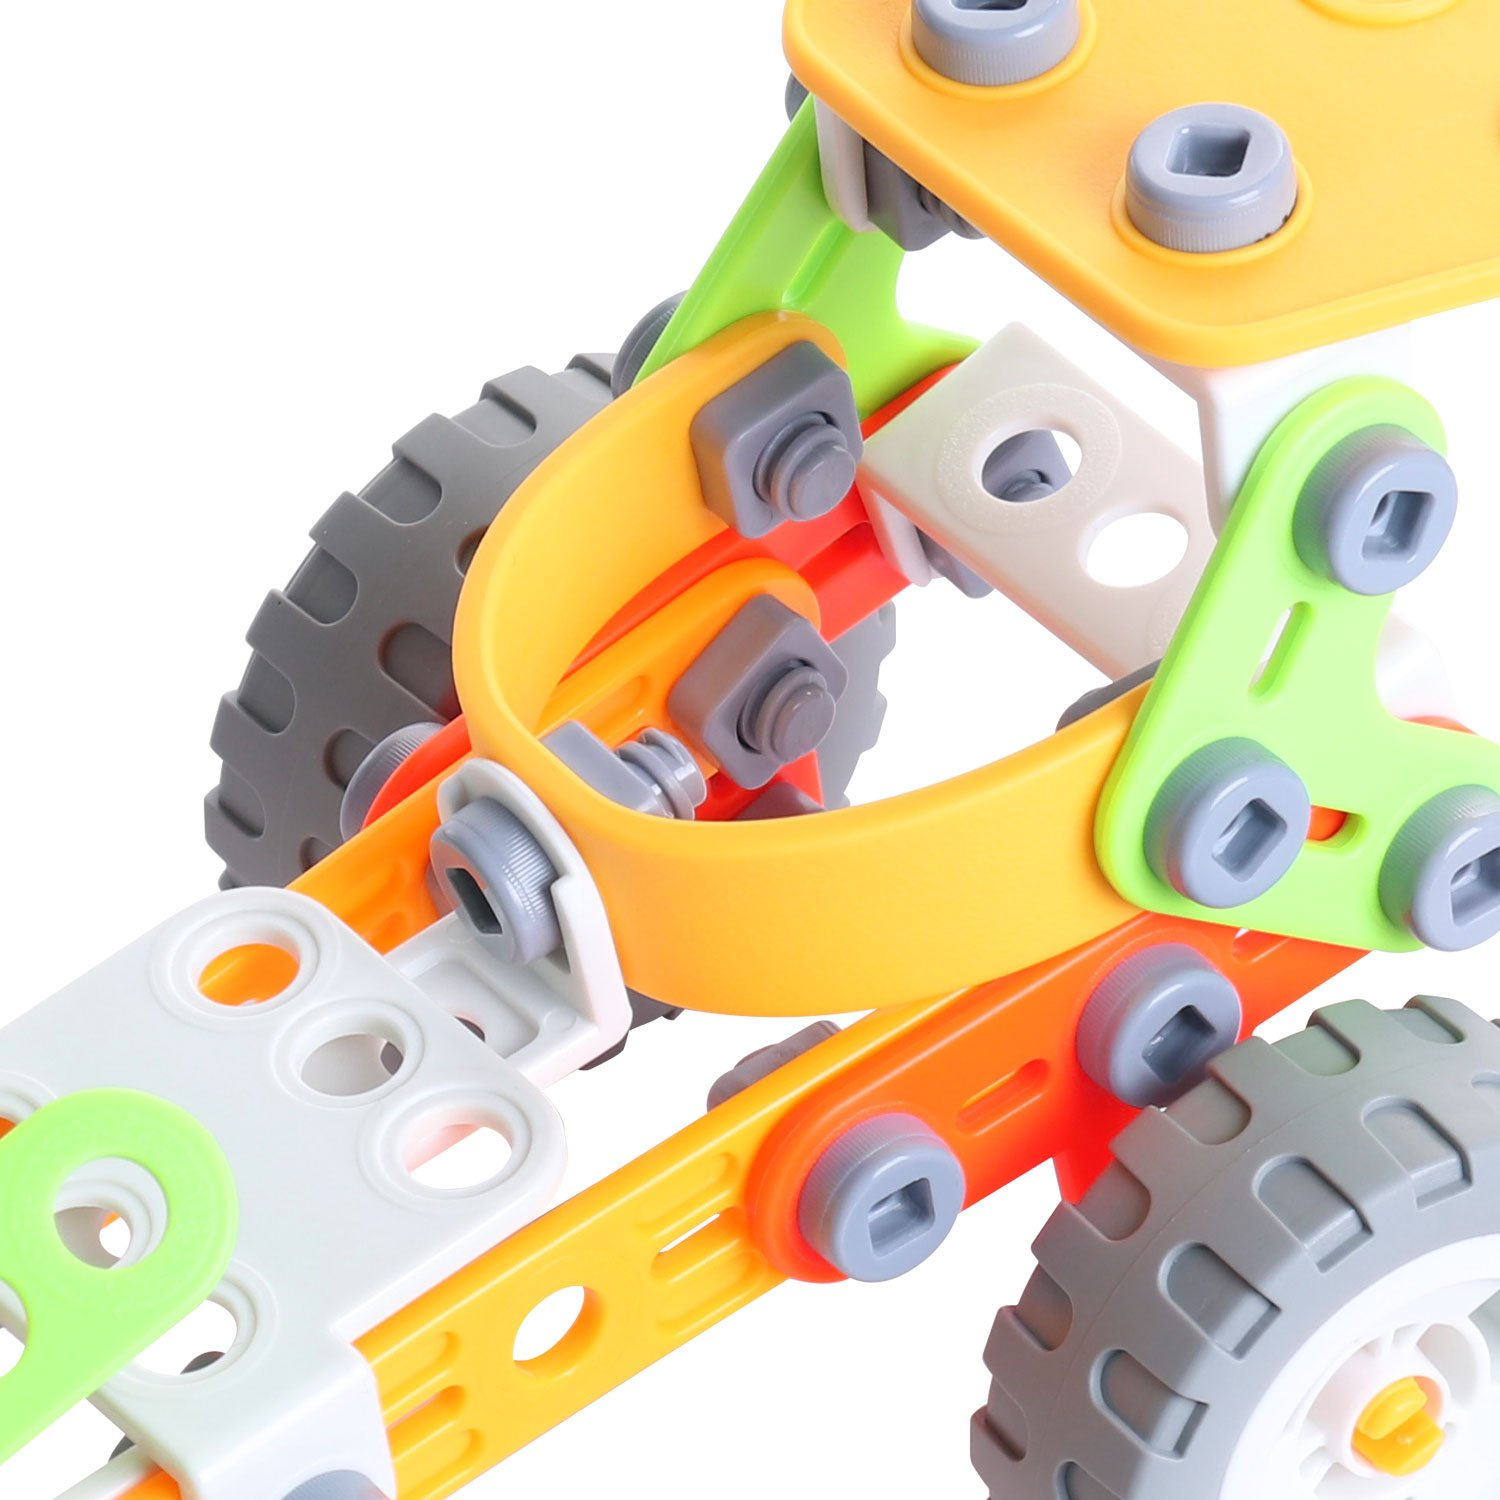 Driven by Friction Force Tutorial Toy for Kids(Rocket Sled) Tutorial Toy for Kids/(Rocket Sled/) Fondear Children/'s STEM Learning Toy Vehicle Building Brick Set Rocket Sled Building Set Creator Engineering Truck Toy